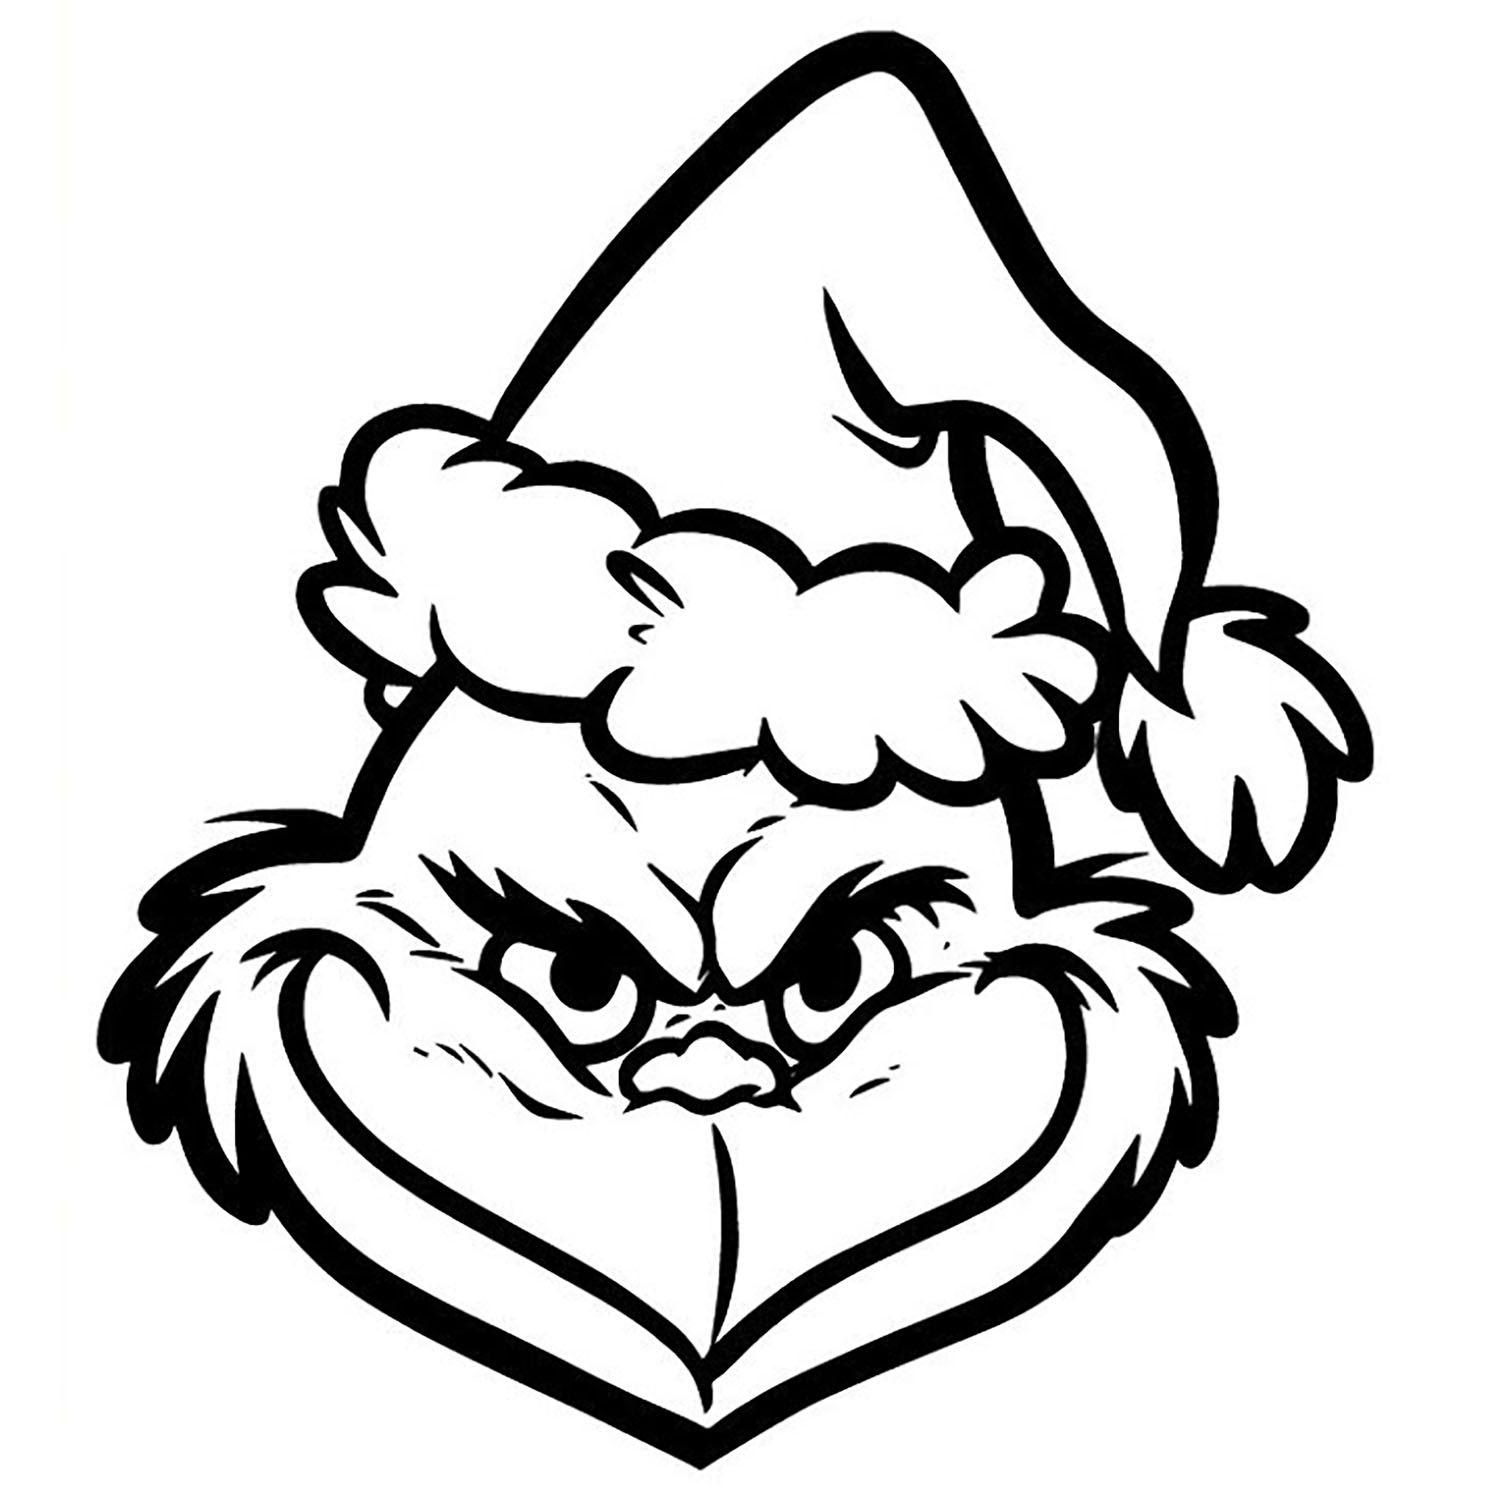 grinch coloring page the grinch the grinch kids coloring pages coloring grinch page